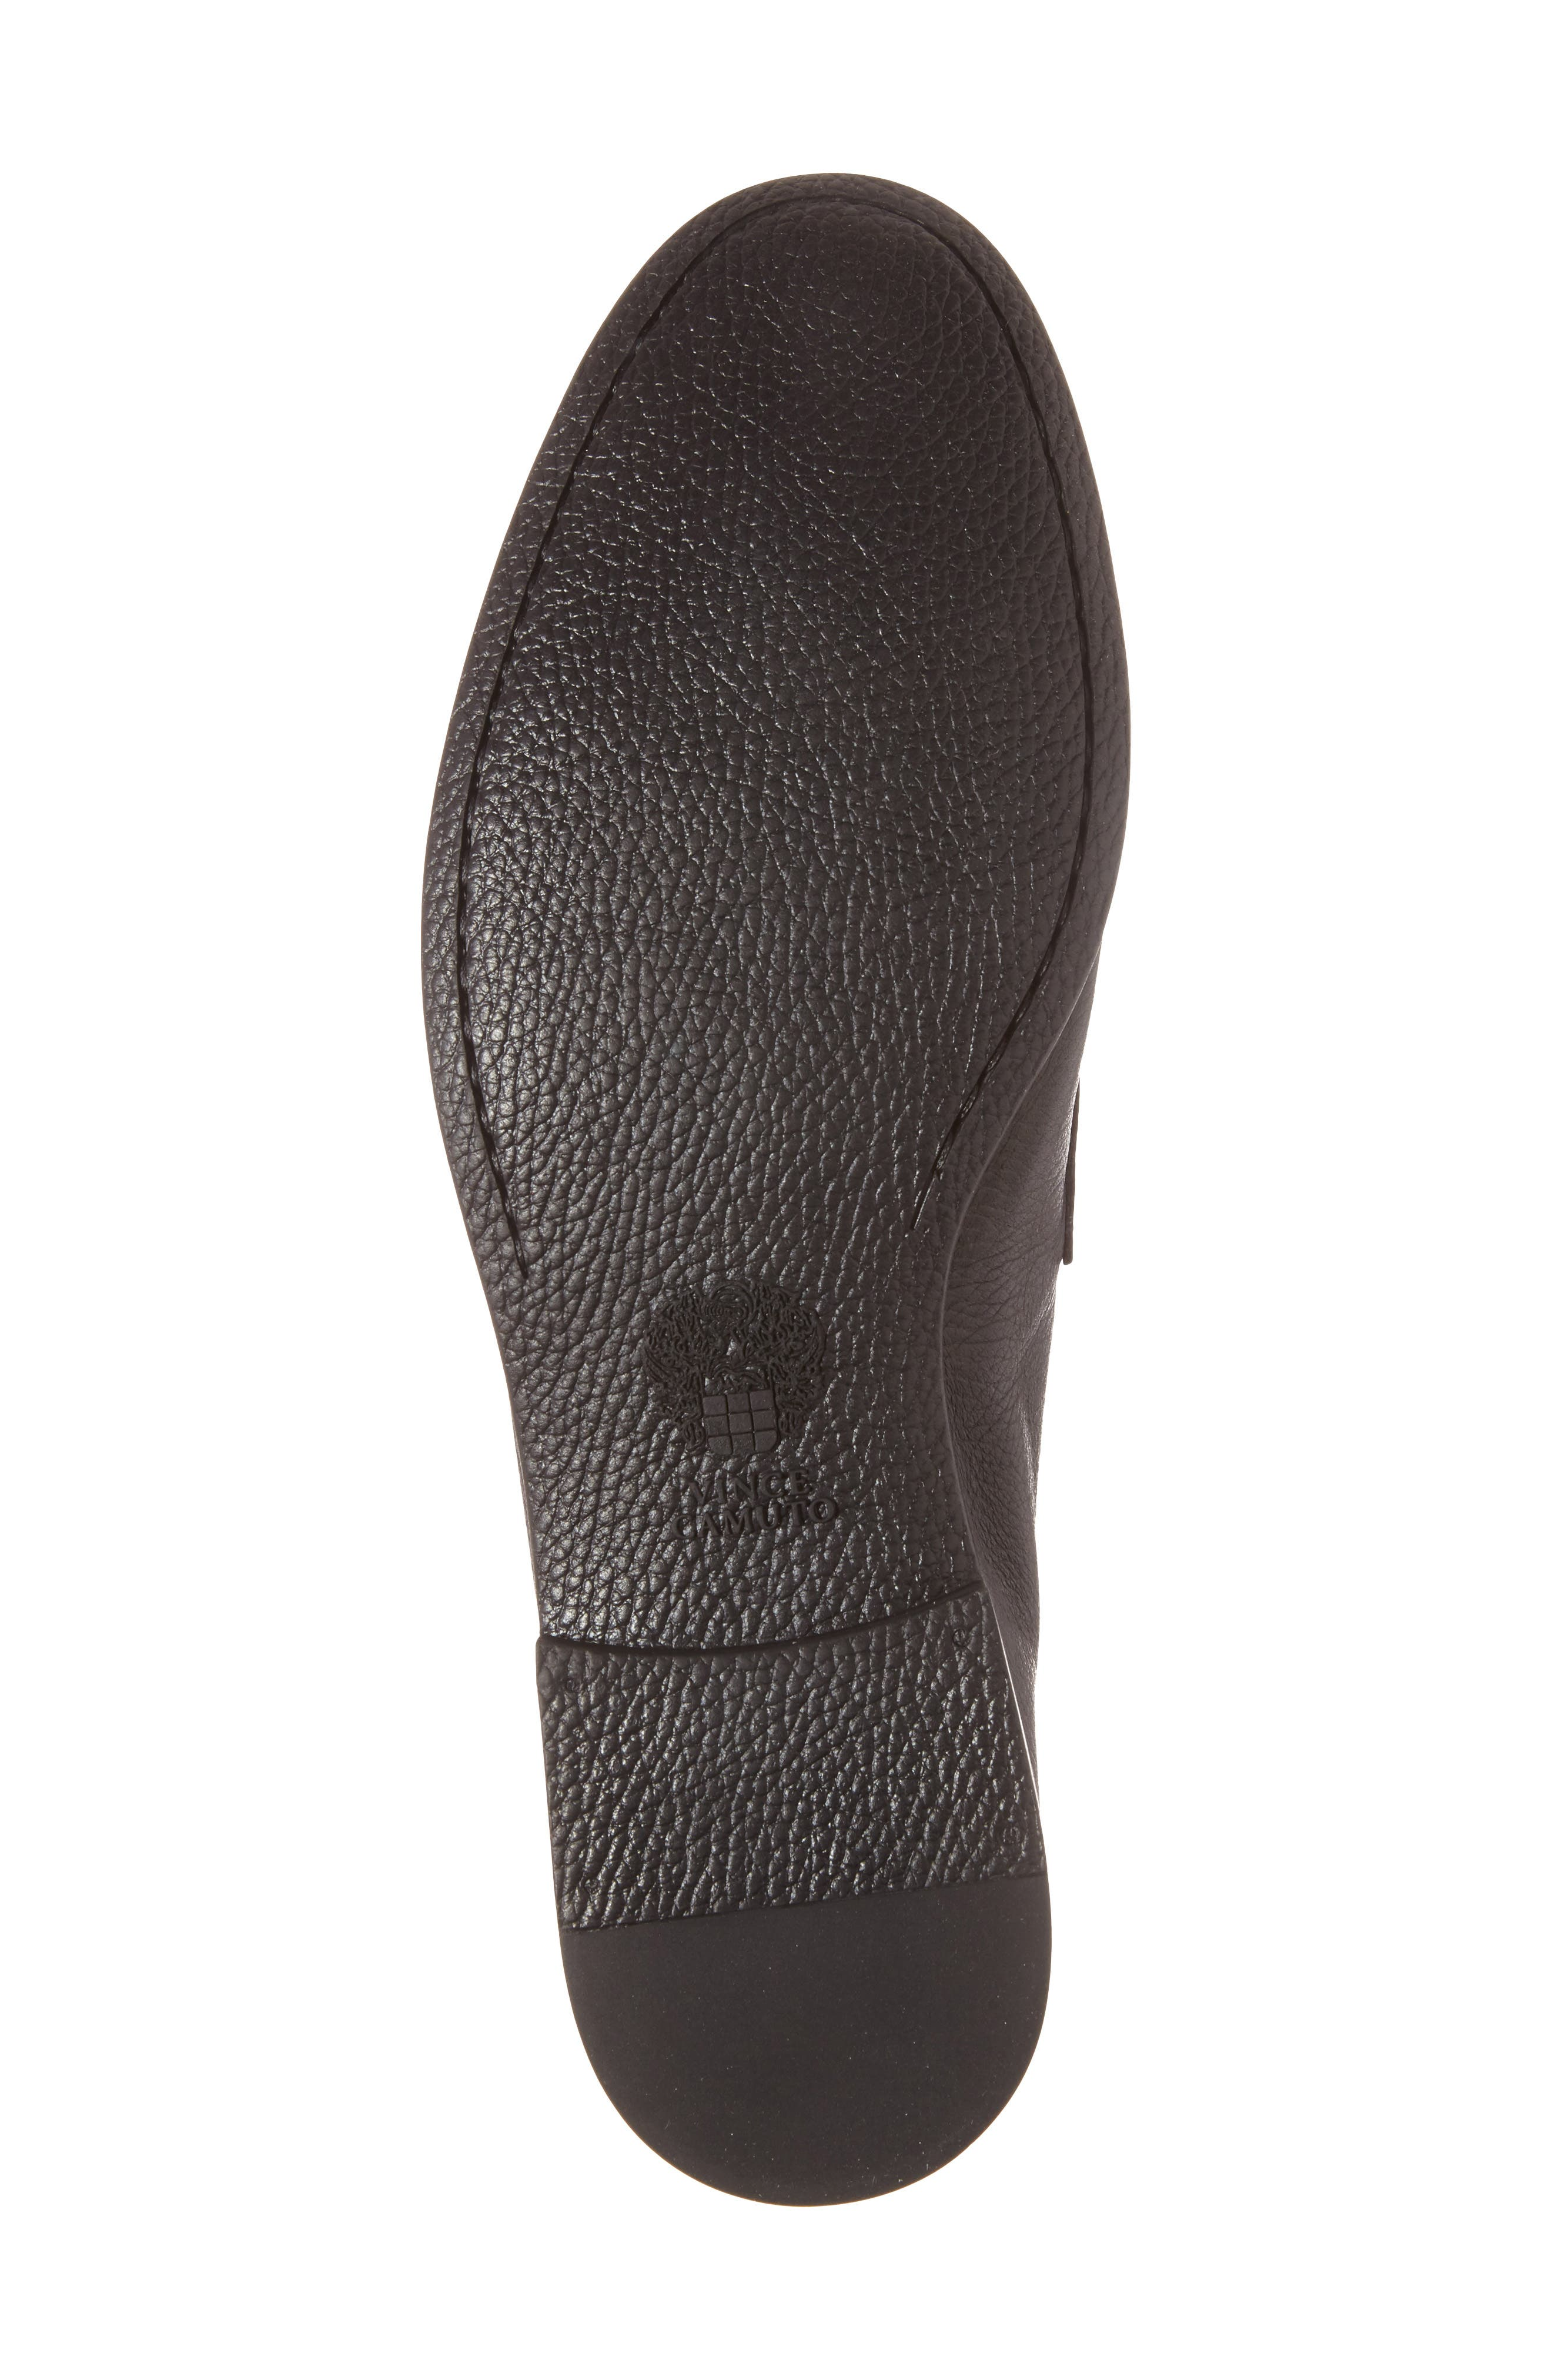 Dillon Penny Loafer,                             Alternate thumbnail 4, color,                             001